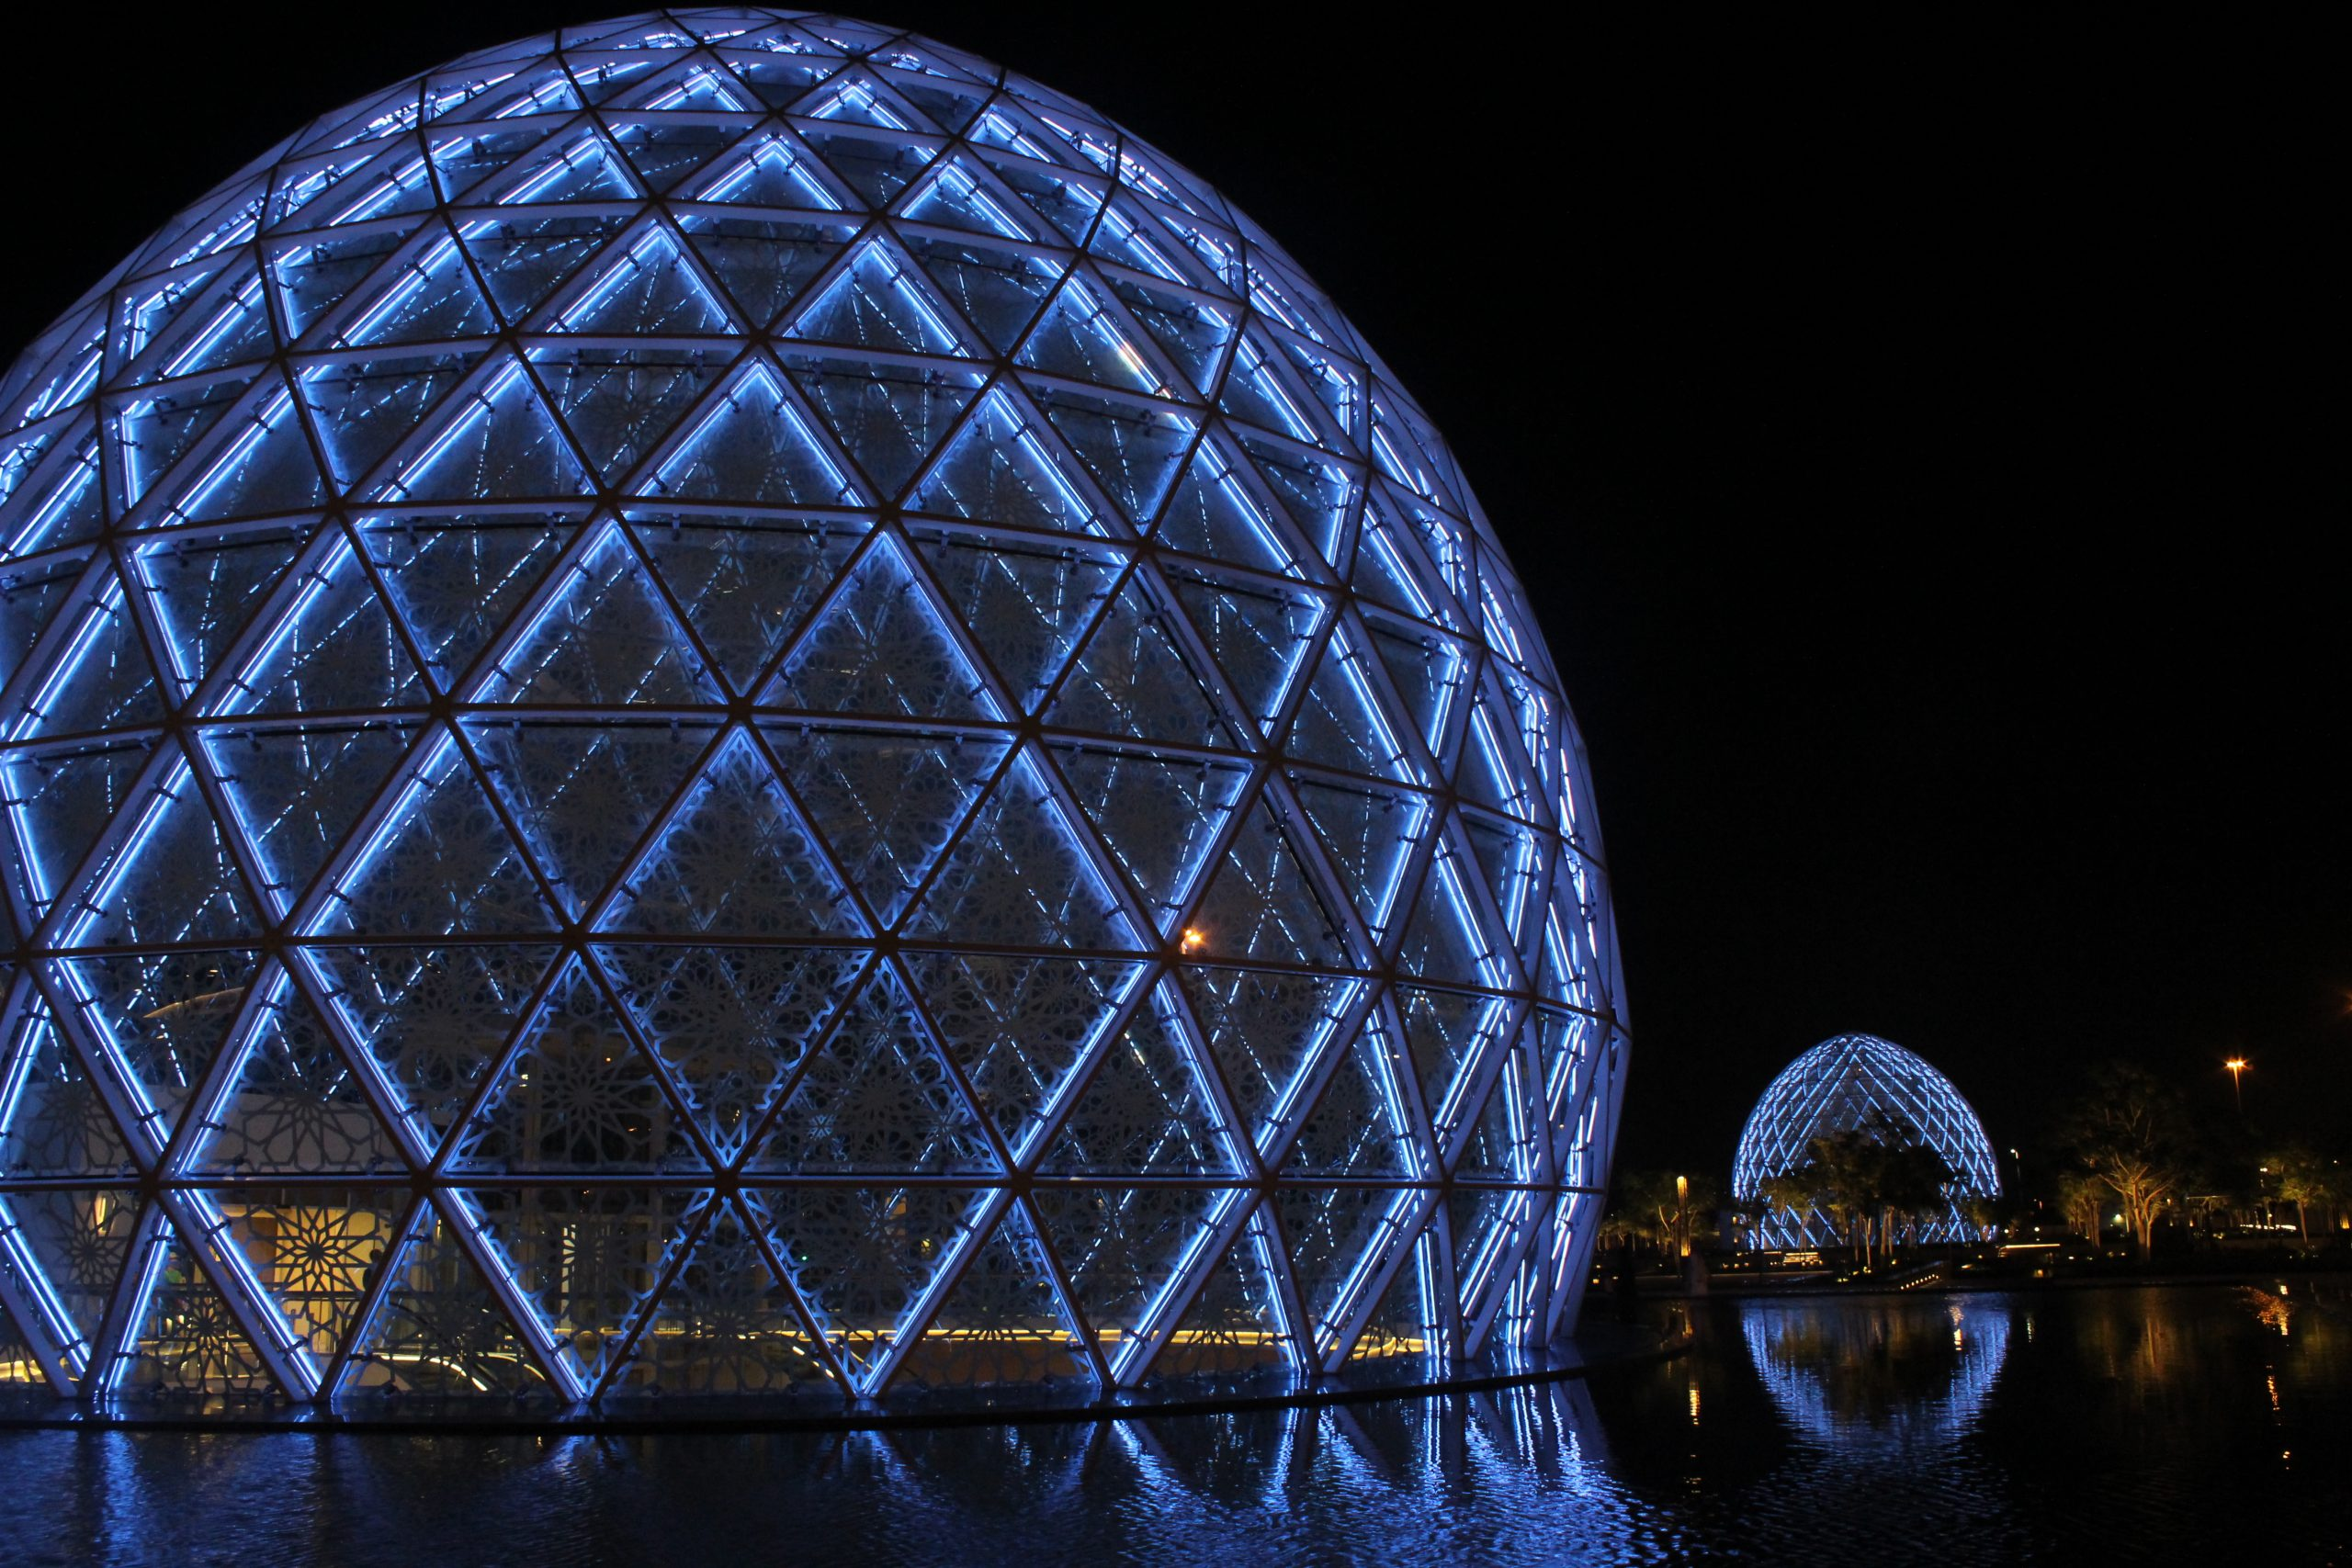 Steel Dome in Abu Dhabi